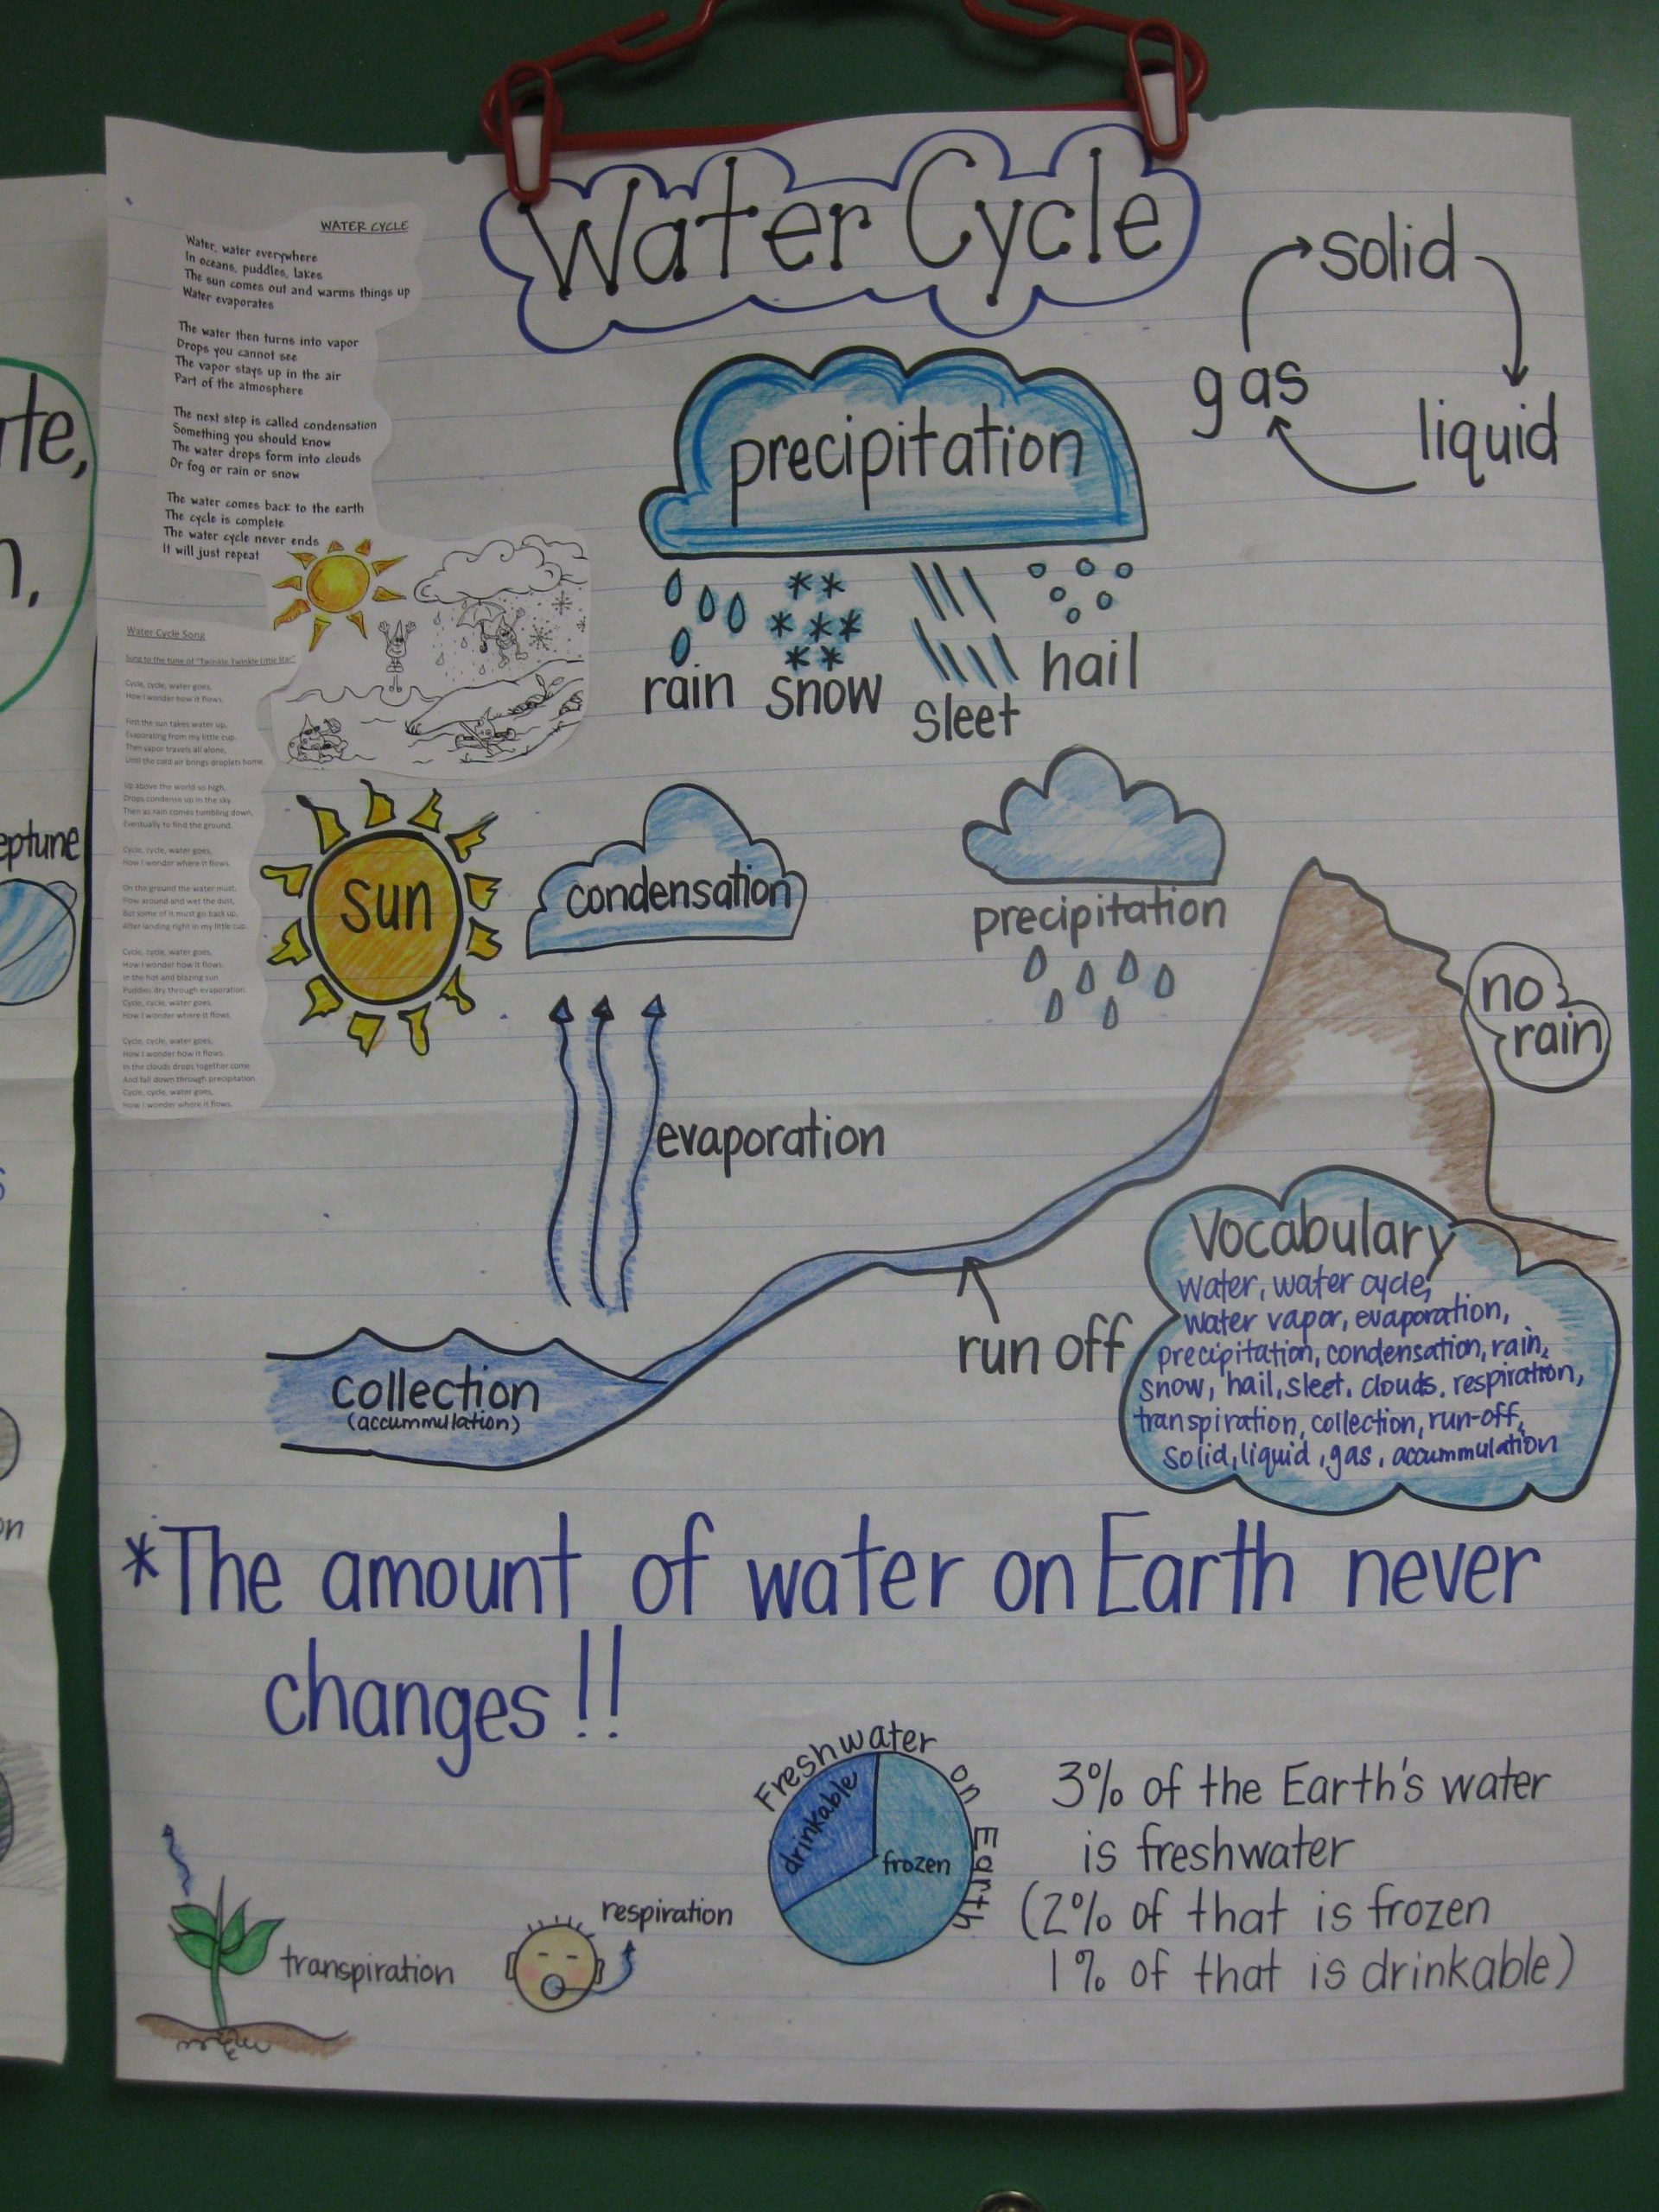 Water Cycle Worksheet 4th Grade Staar Review Anchor Chart I Use This Chart to Review the